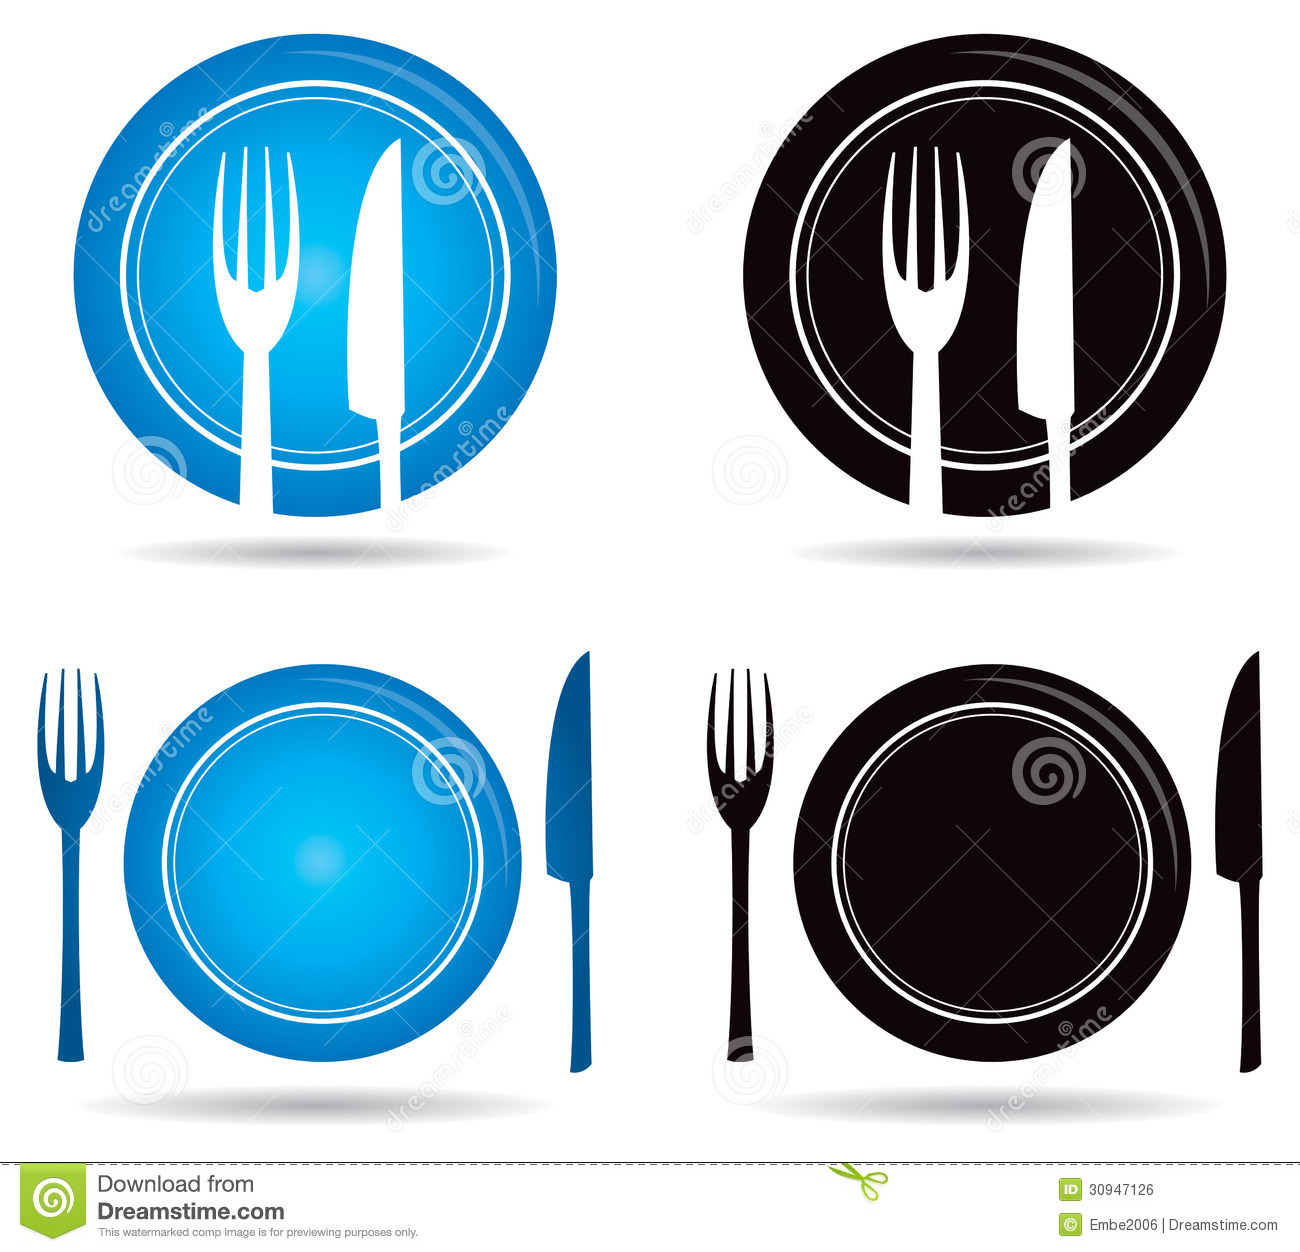 Knife Fork Logo Royalty Free Stock Image Image 30947126